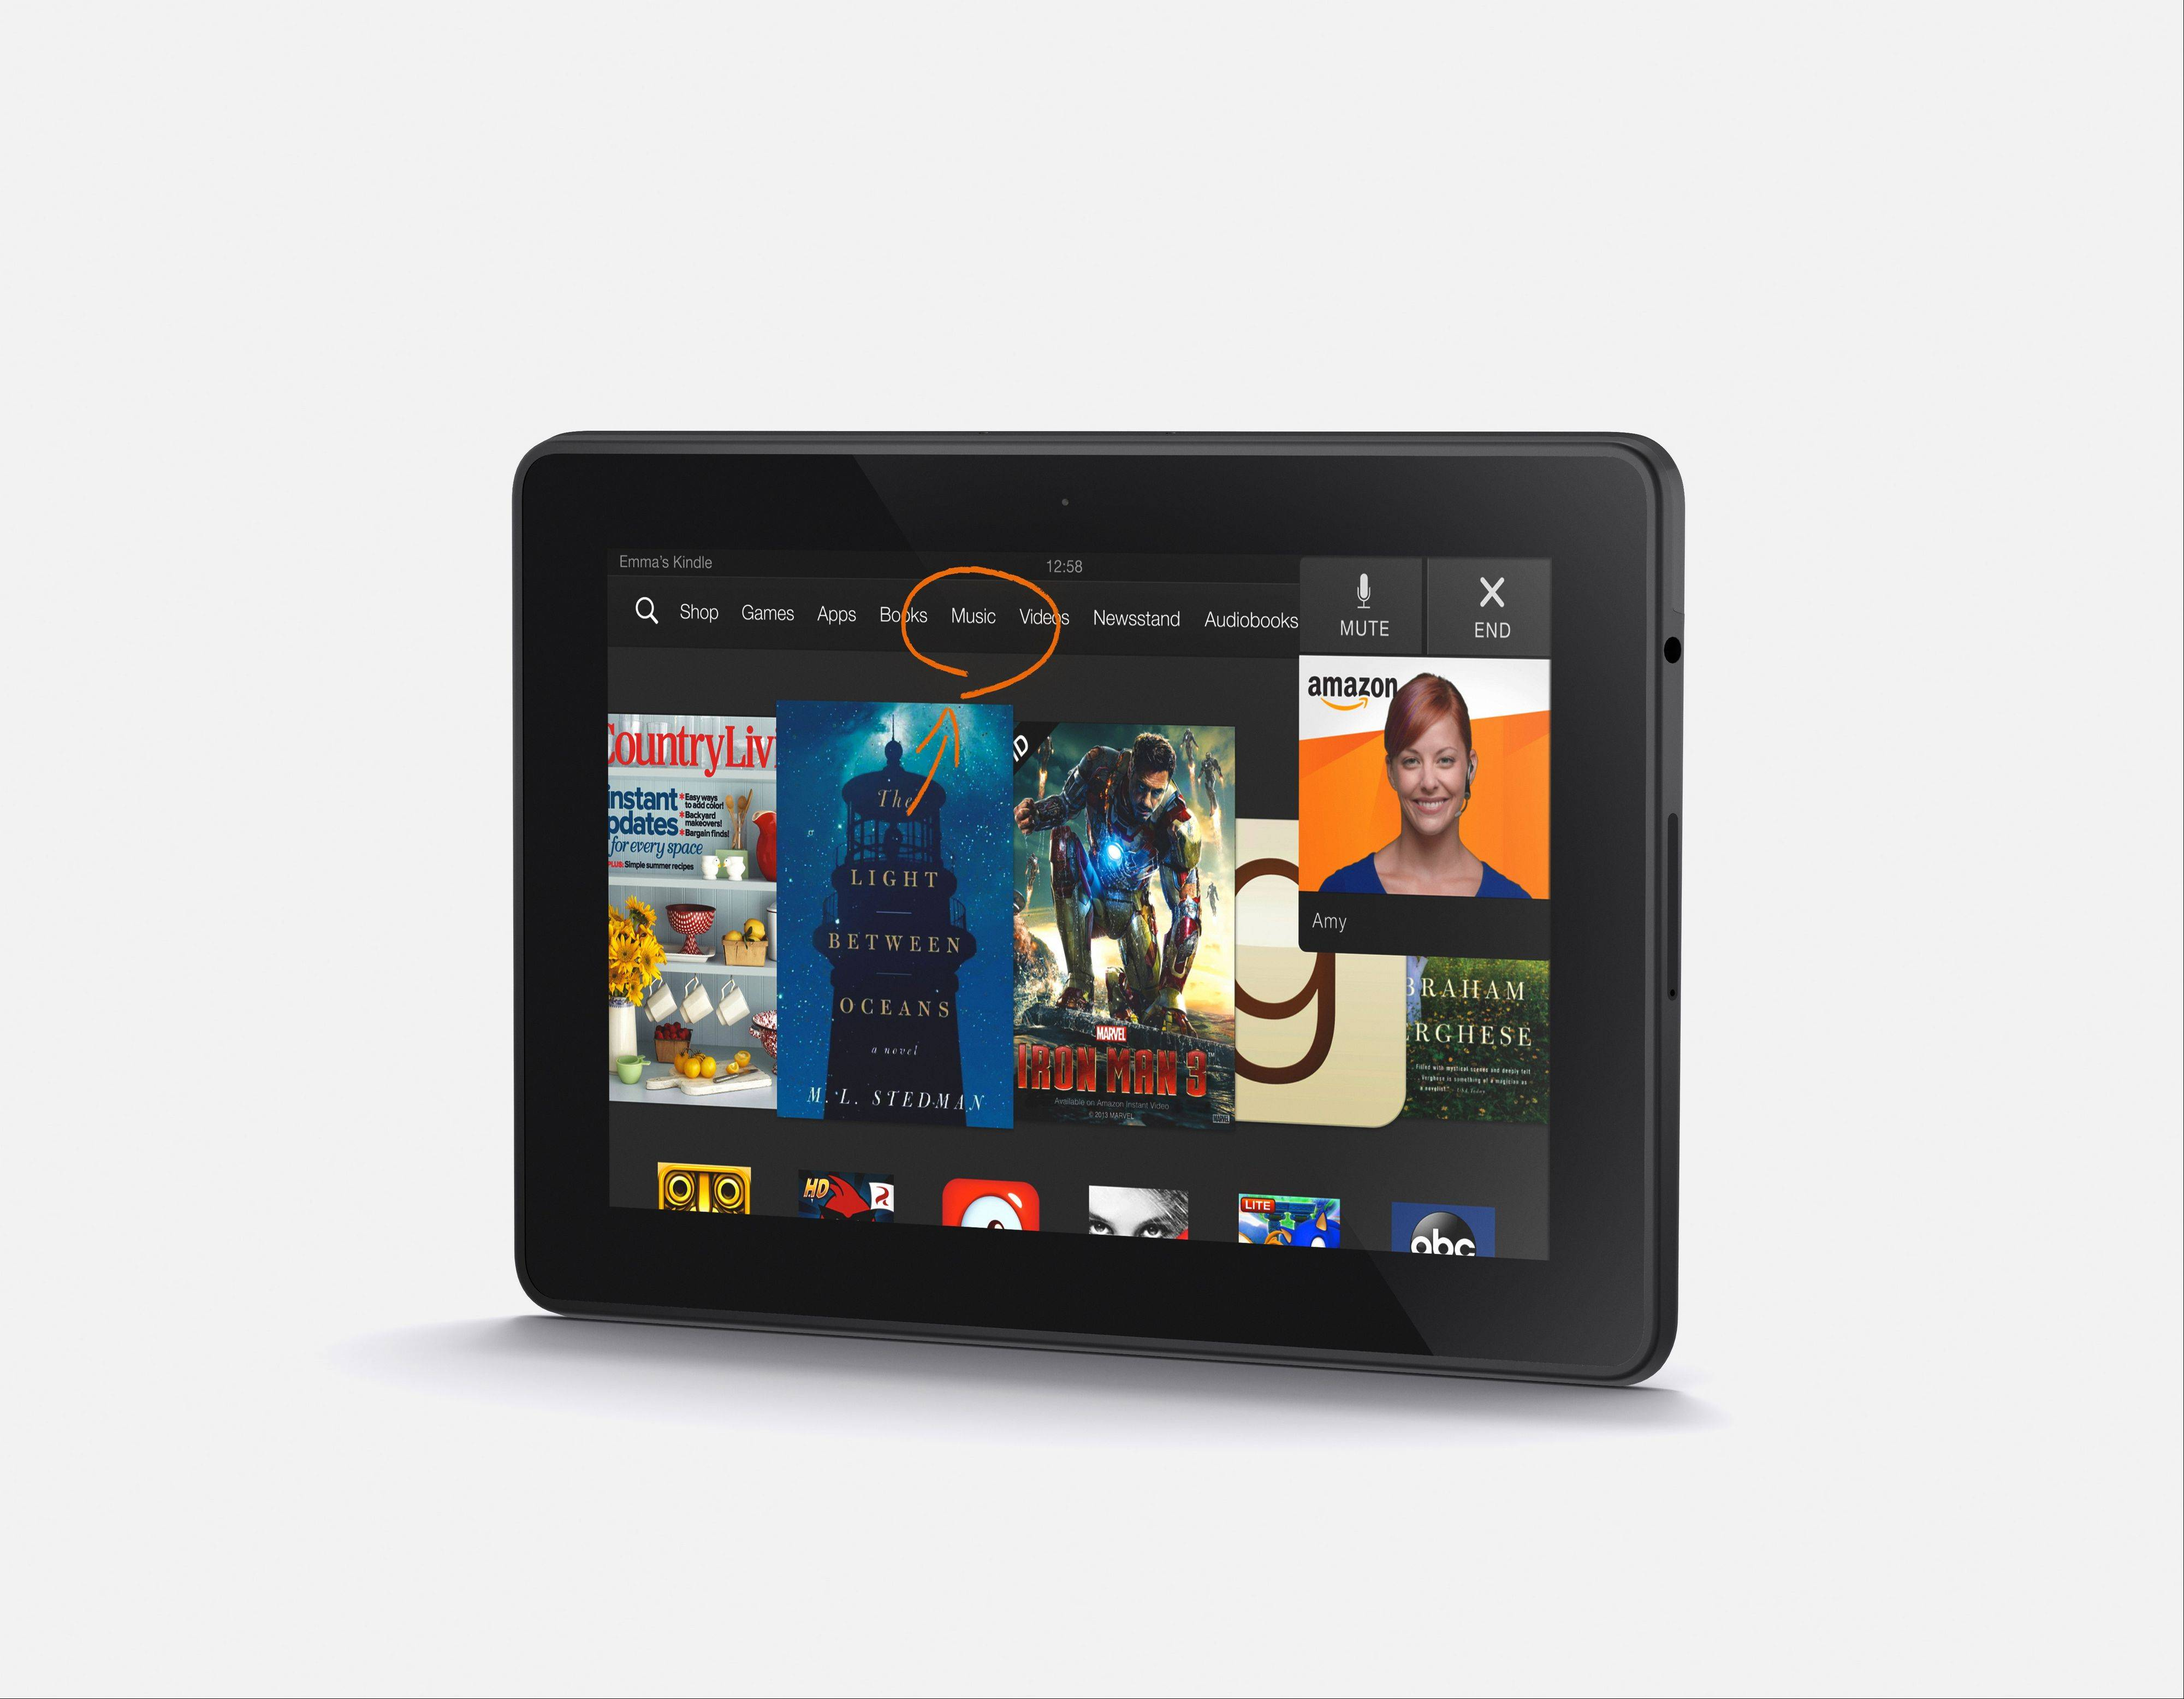 Amazon is the latest company to unveil new tablets, including a new 7 inch Kindle Fire HDX.